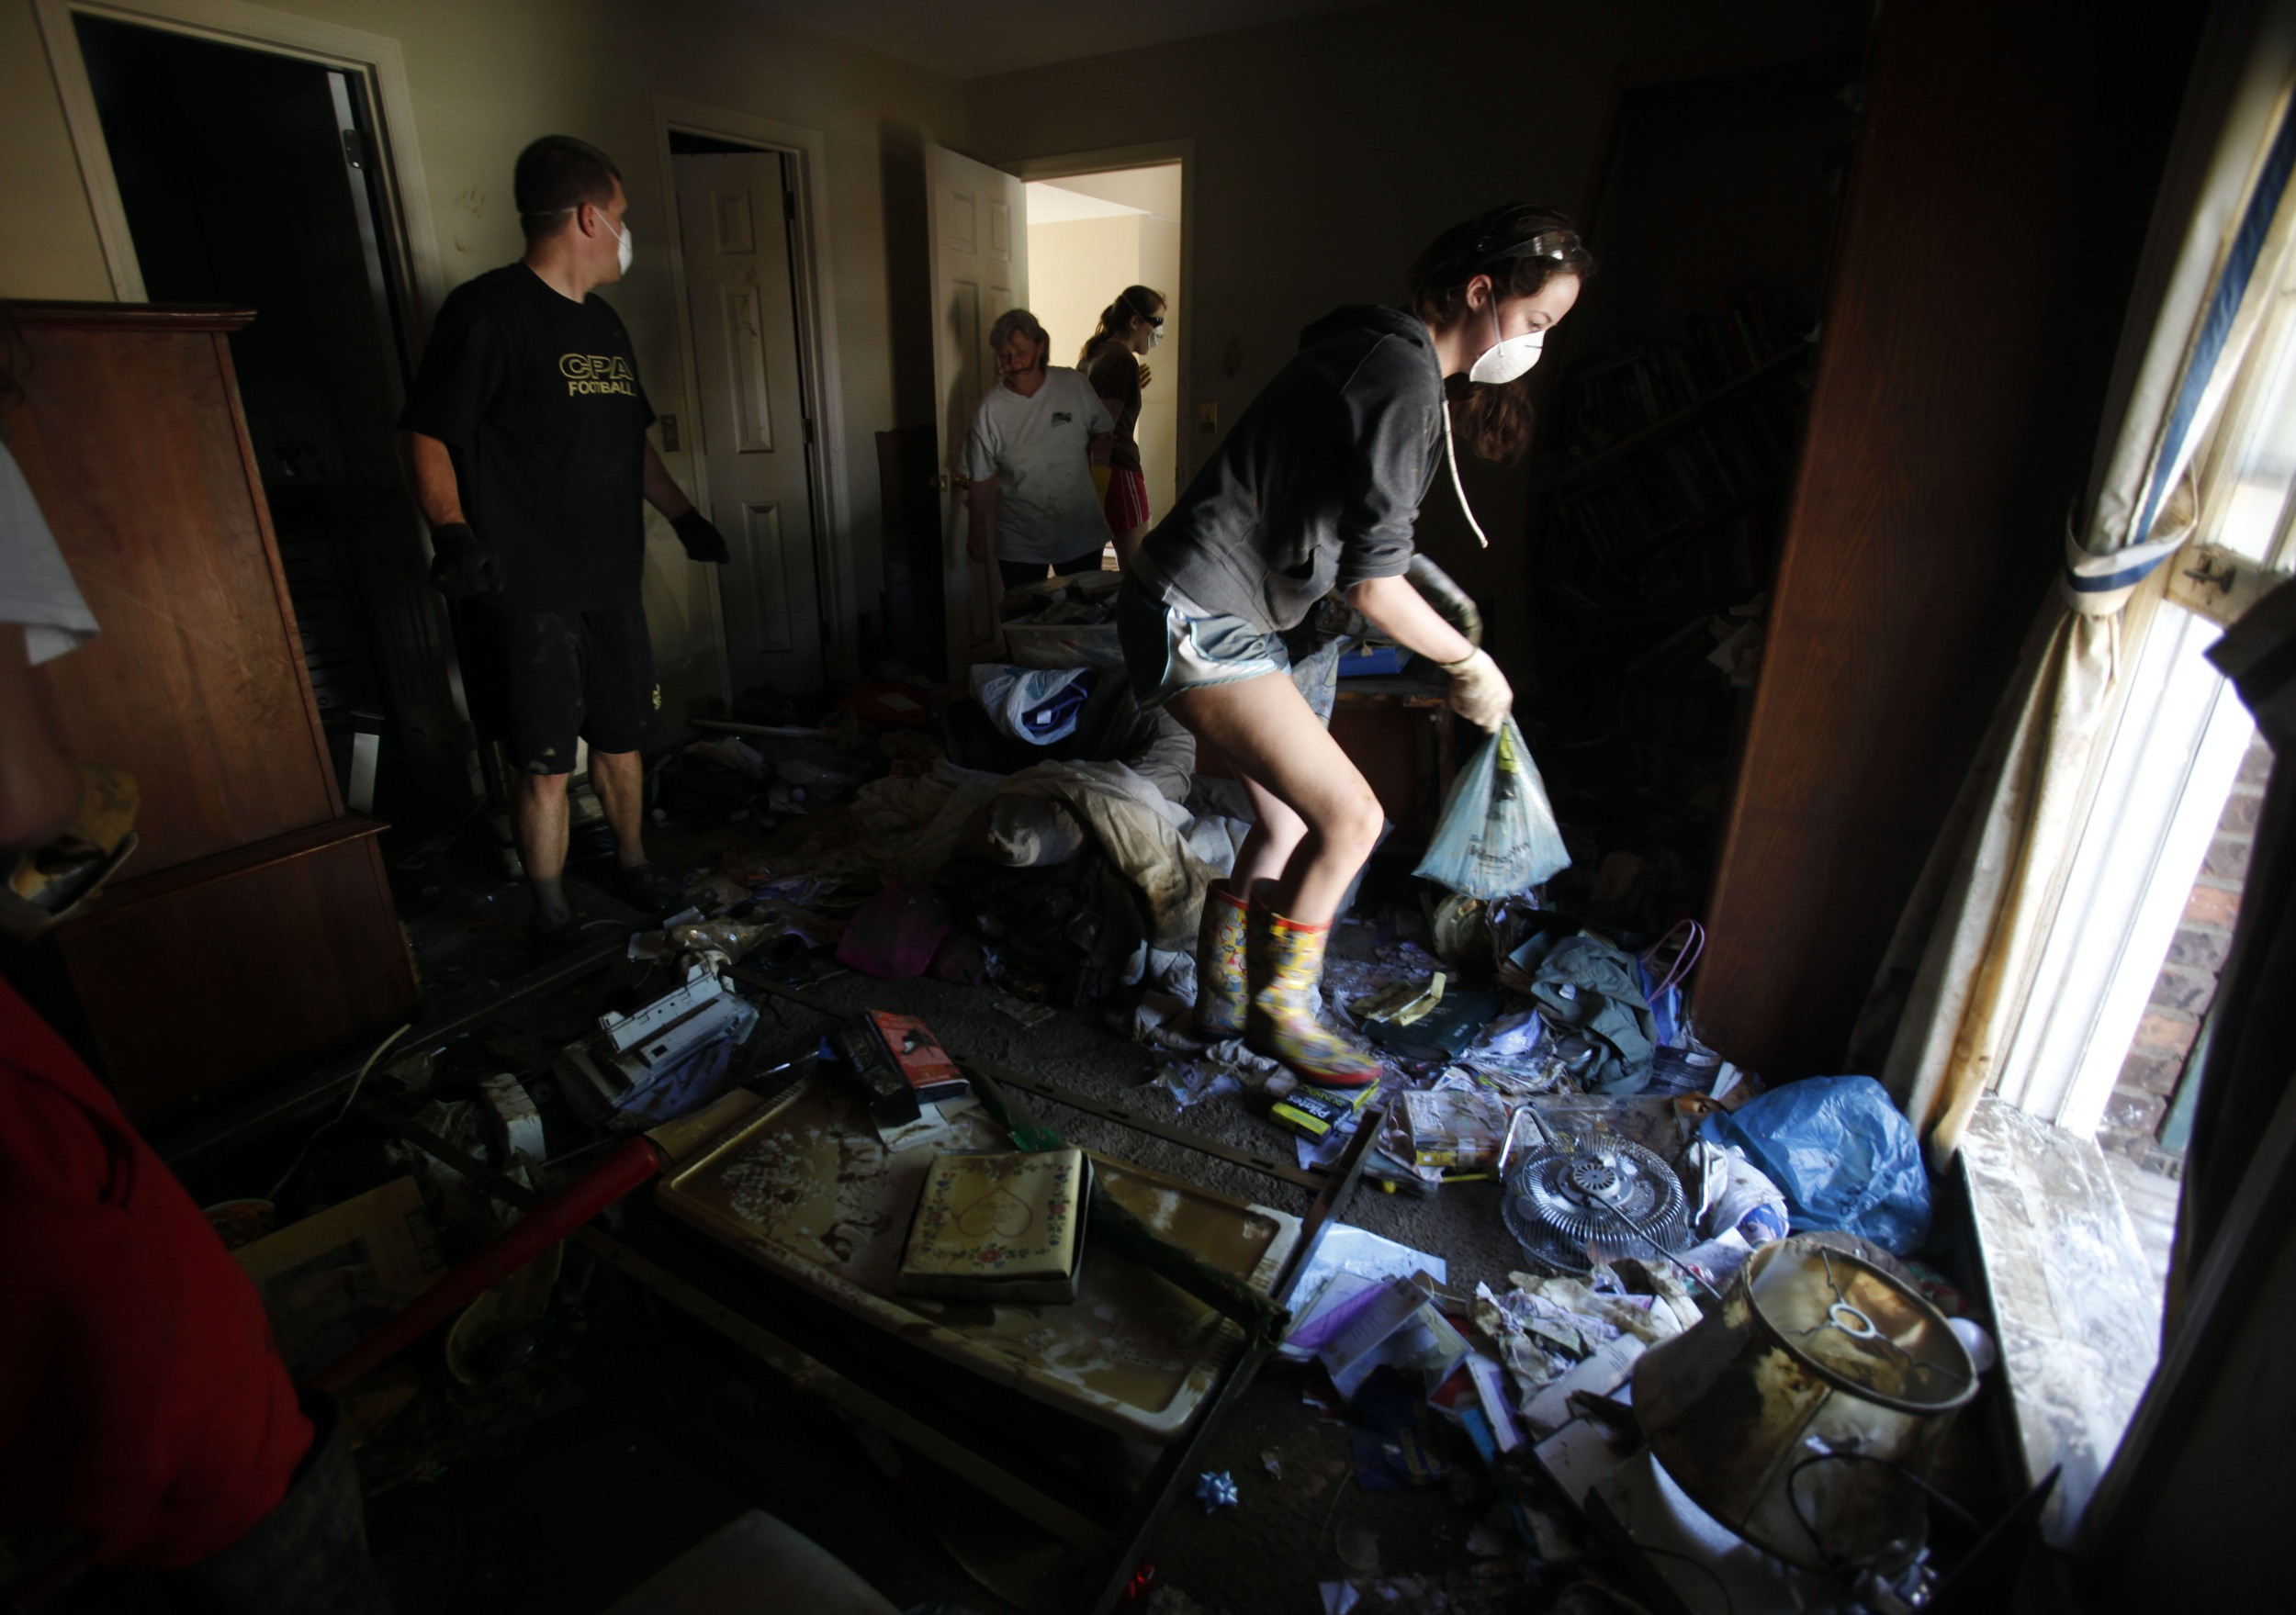 Elizabeth Patton, 15, cleans out her flooded room with help from her friends and her mother on Beech Bend Drive Tuesday, May 4, 2010 in Nashville, Tenn.